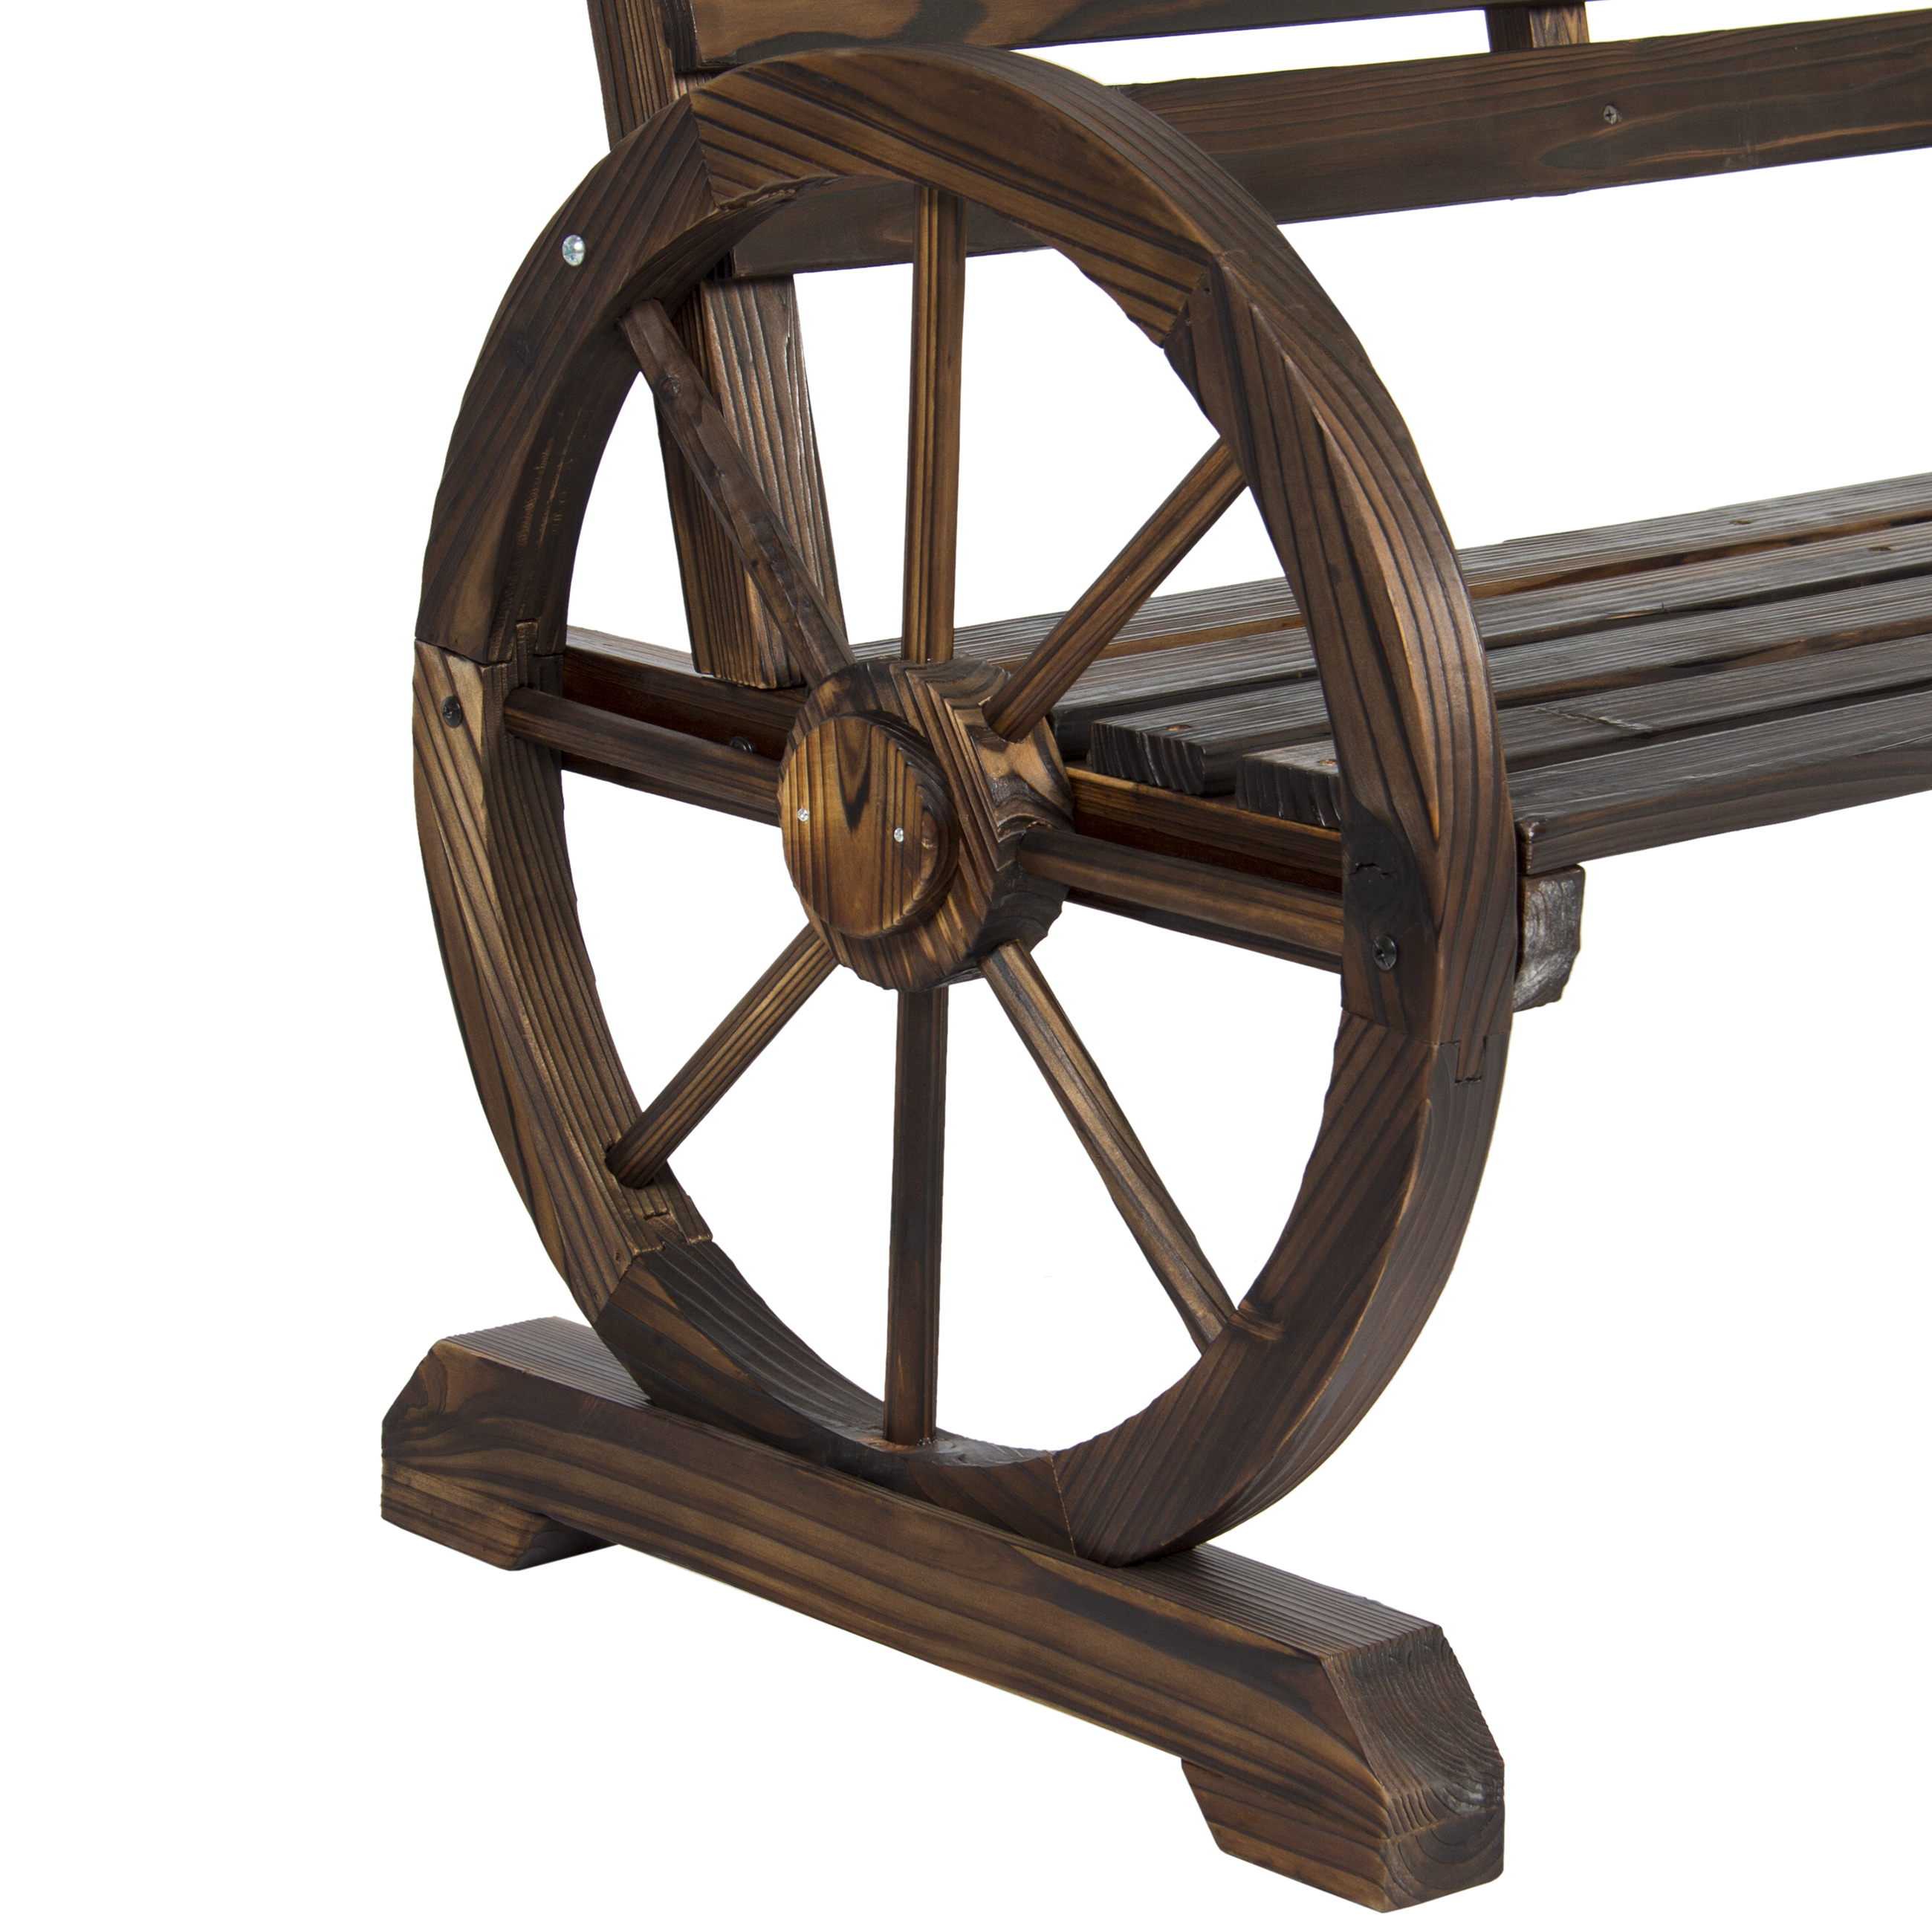 BCP Patio Garden Wooden Wagon Wheel Bench Rustic Wood Design Outdoor  Furniture   Walmart.com